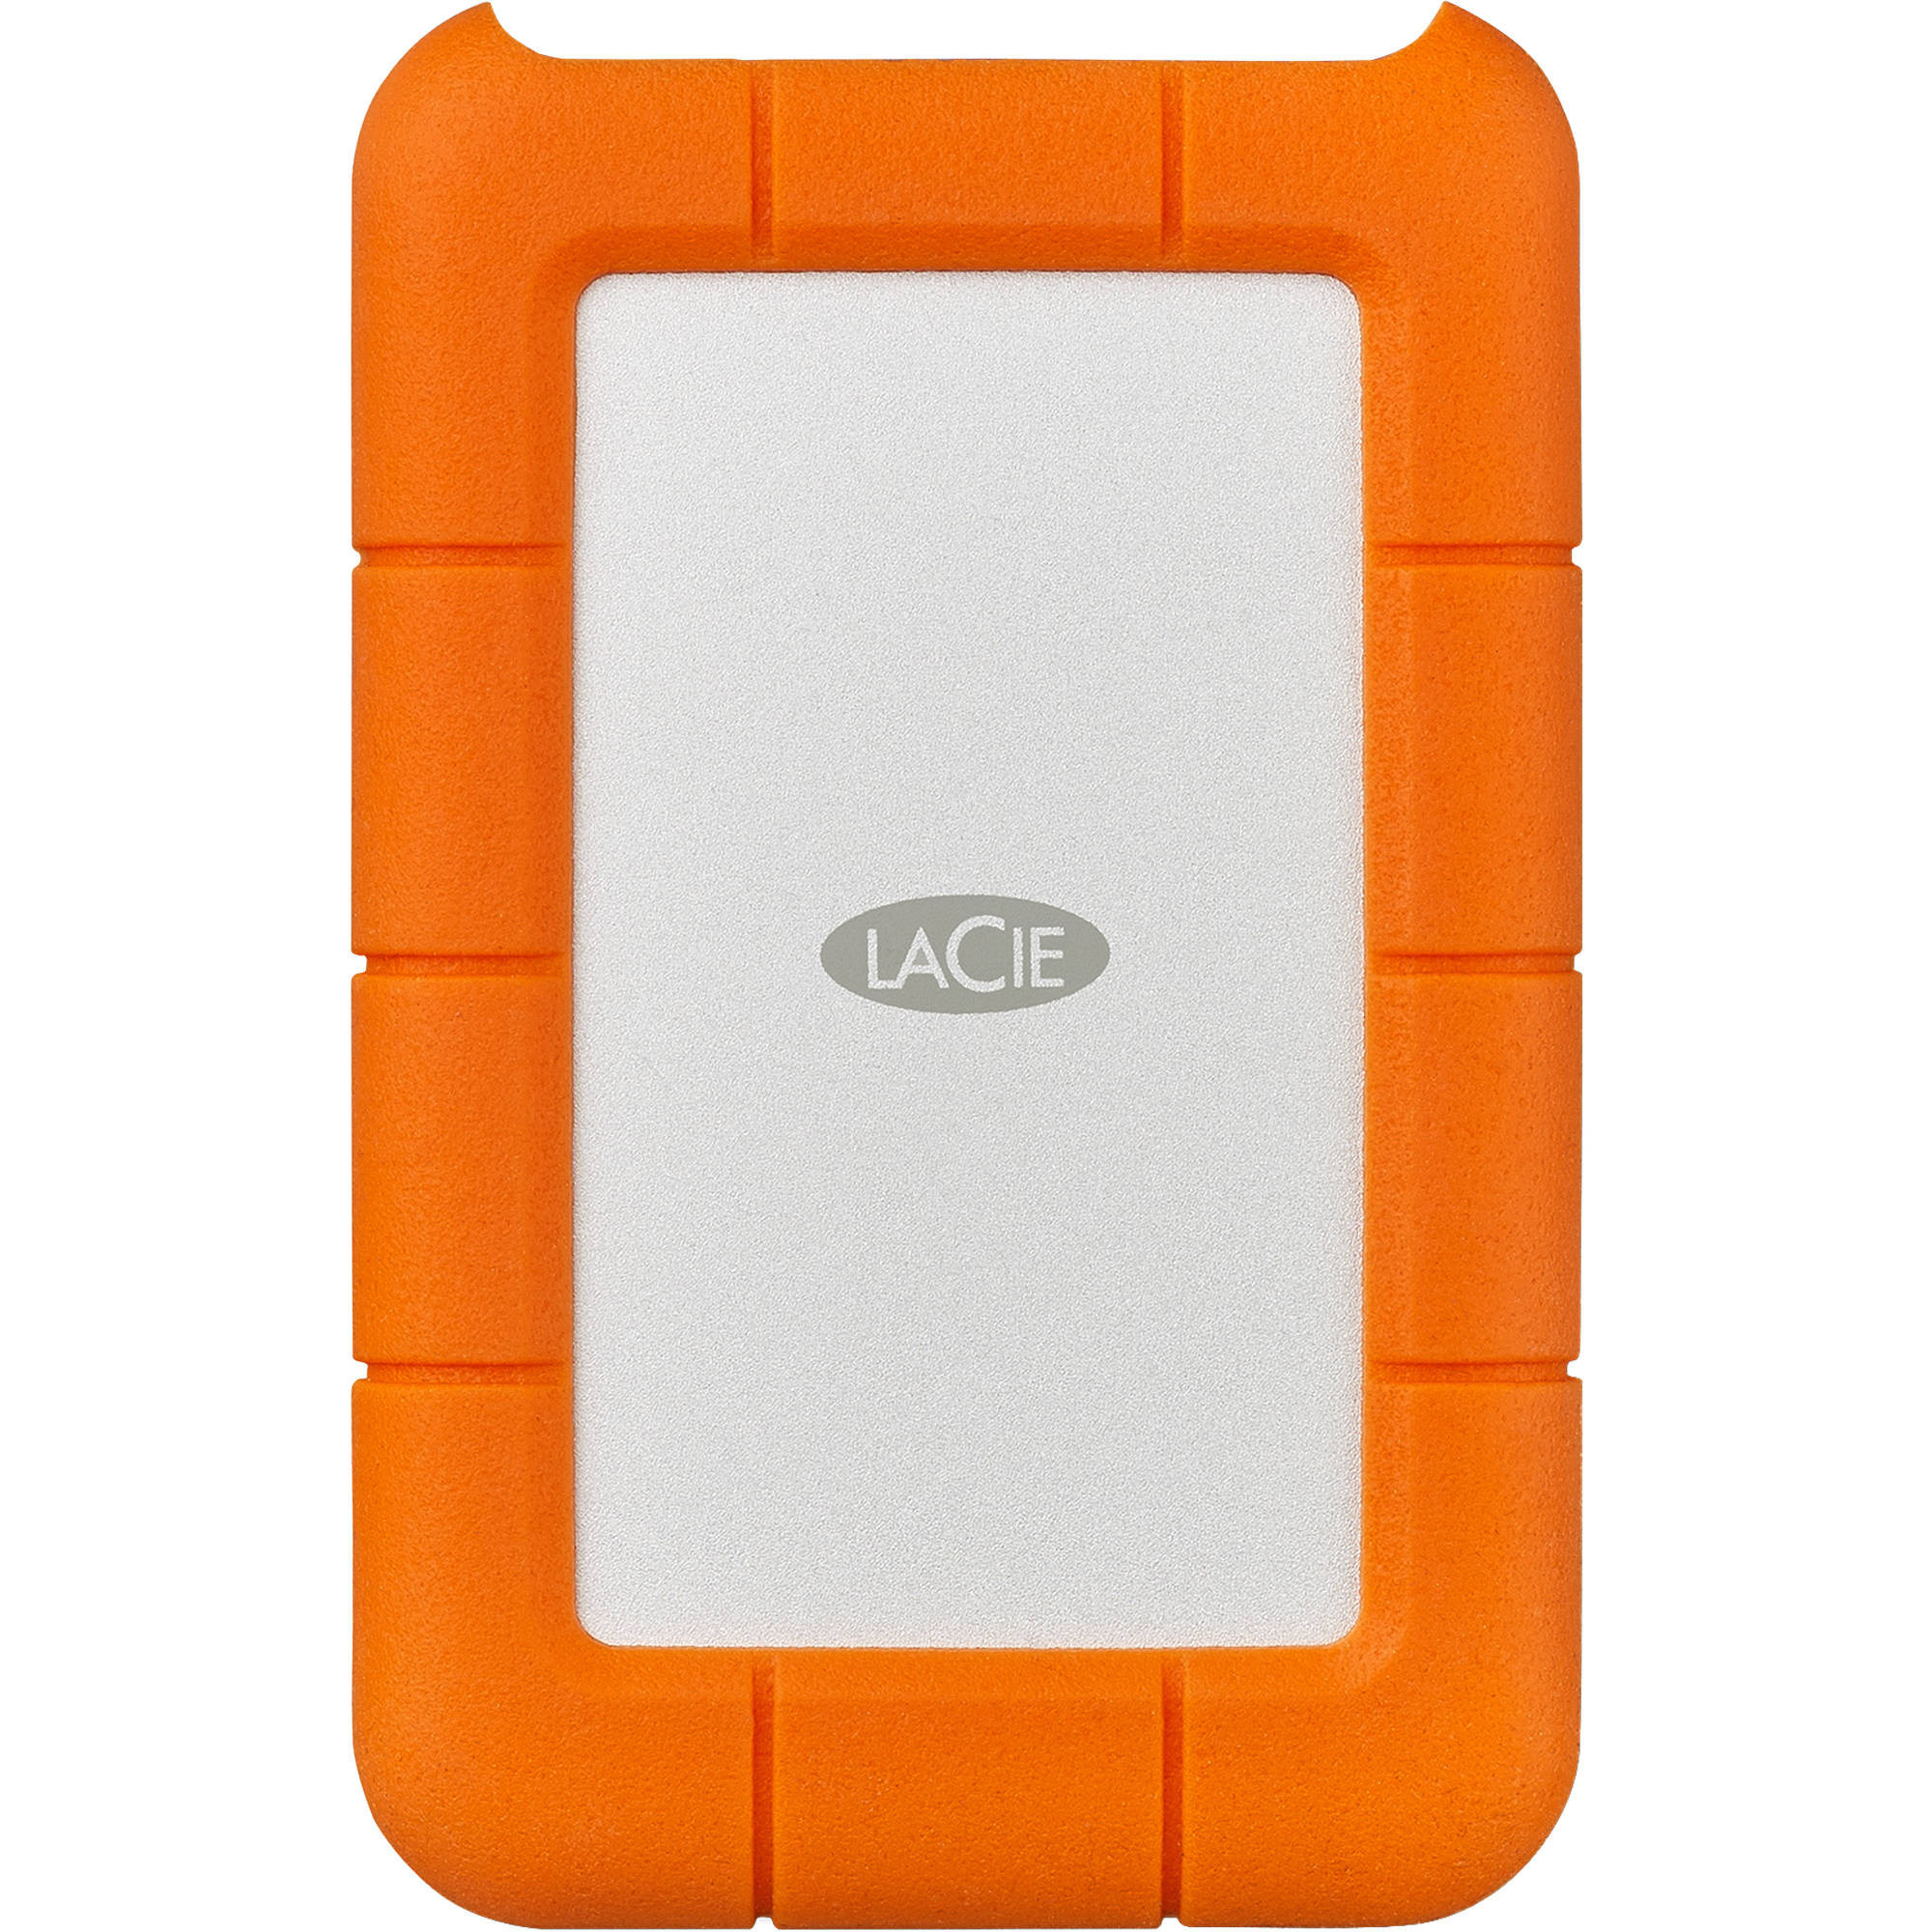 LaCie 4TB Rugged USB 3.0 Type-C External Hard Drive Digital Media LACIE